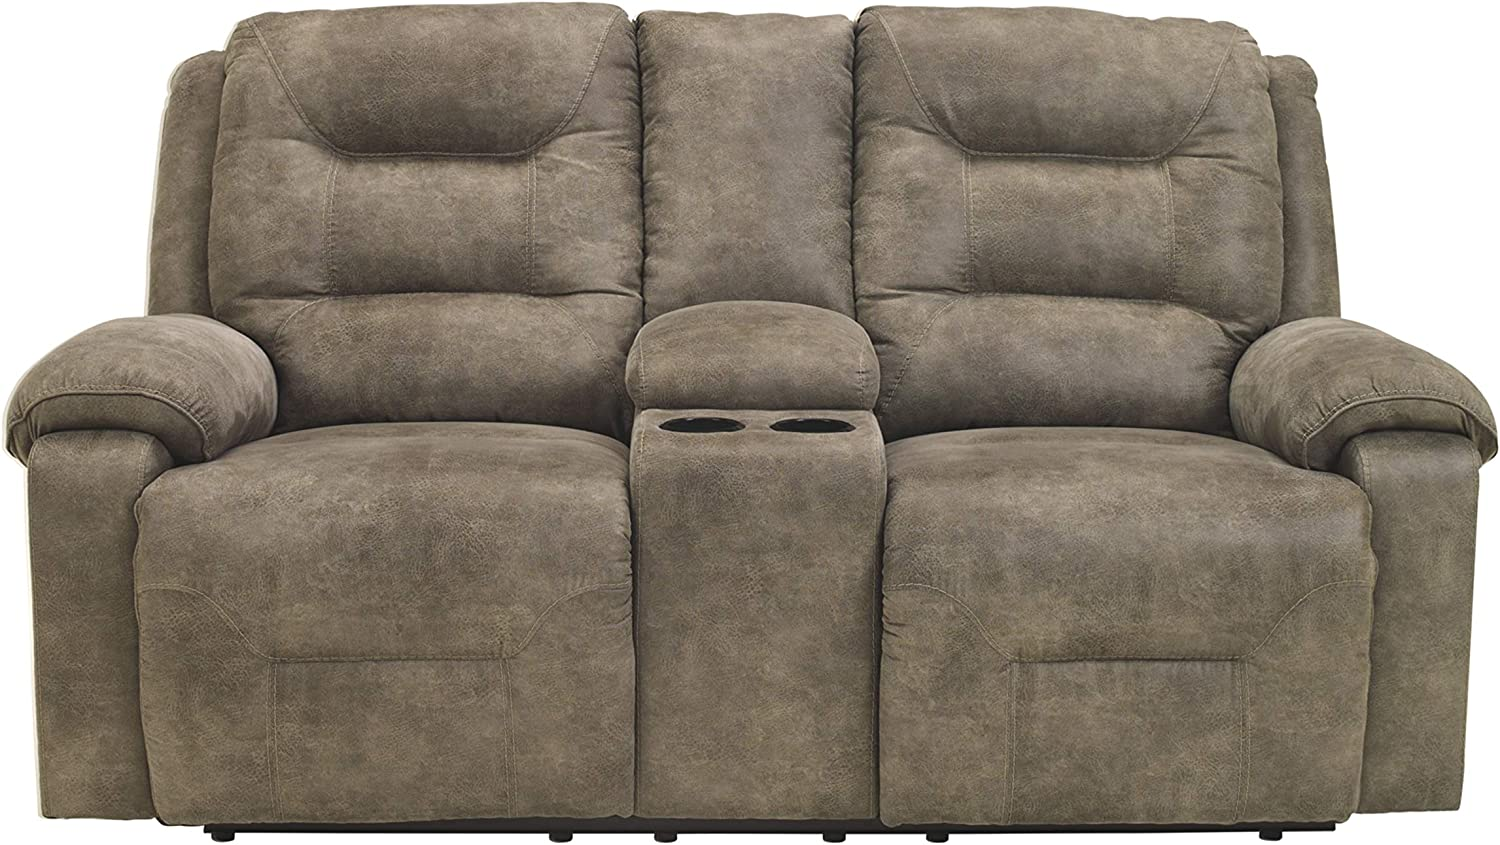 Signature Design by Ashley - Rotation Casual Upholstered Double Reclining Loveseat - Console - Gray